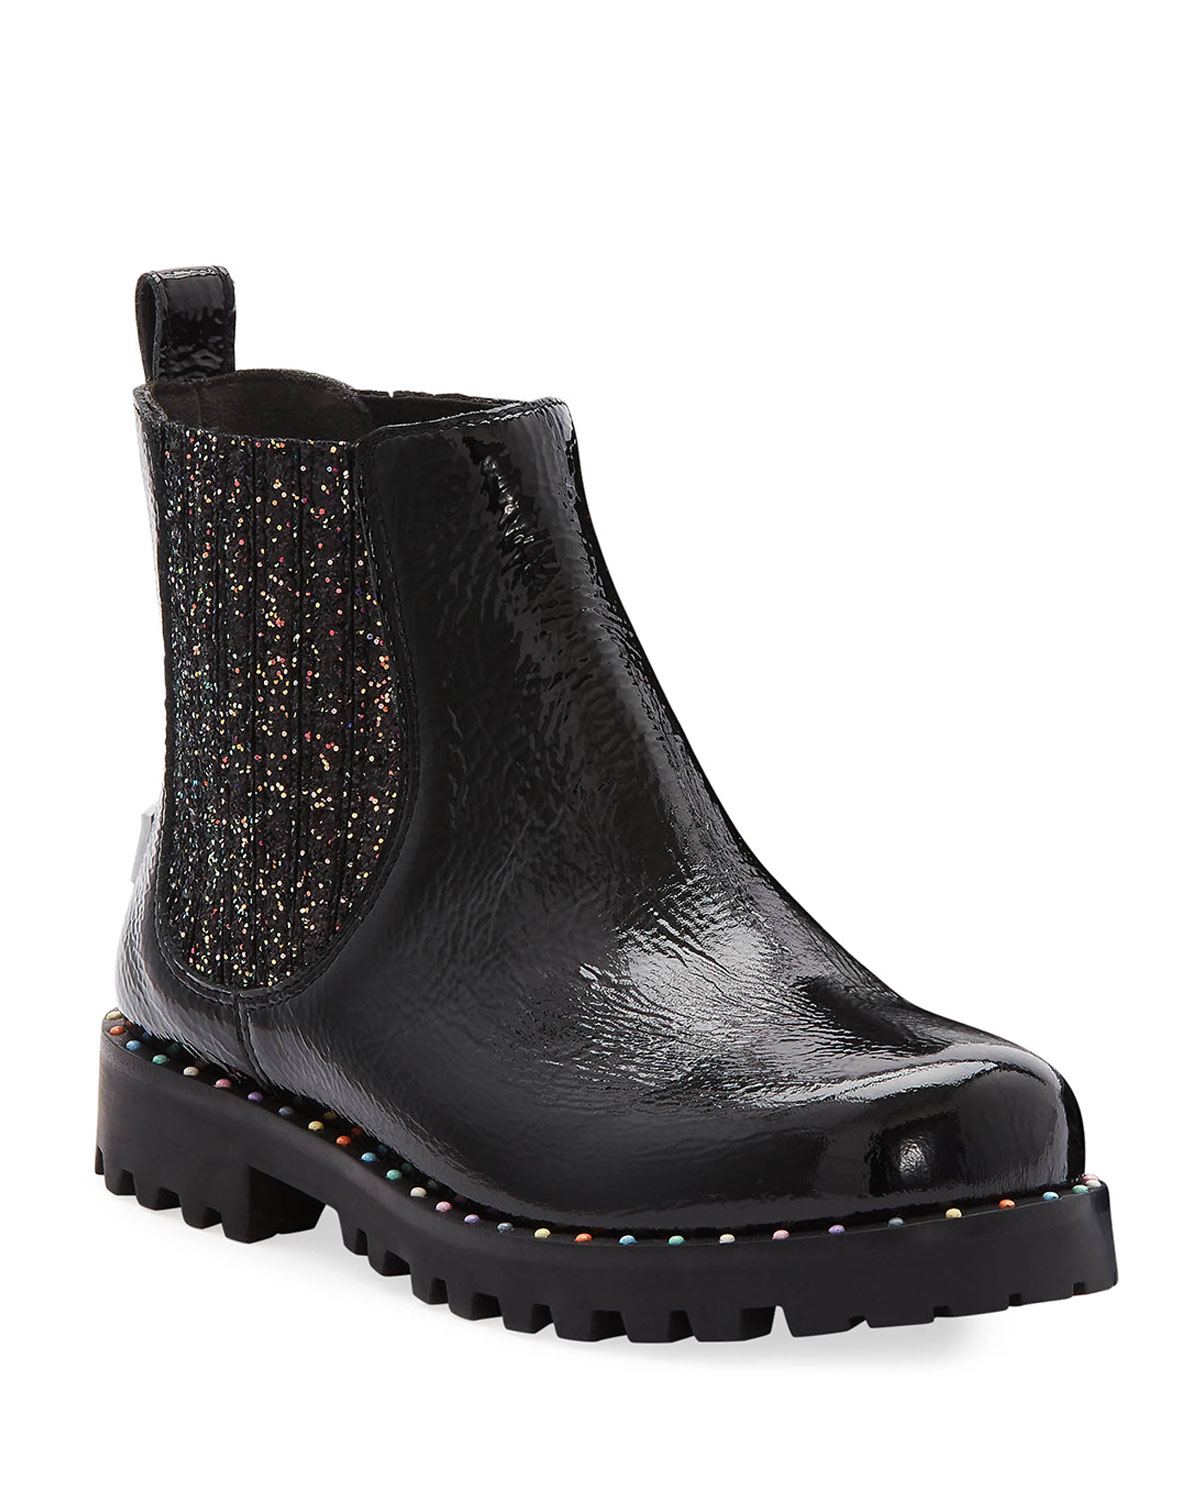 Lara Rainbow Studded Patent Leather Boots, Baby/Toddler/Kids